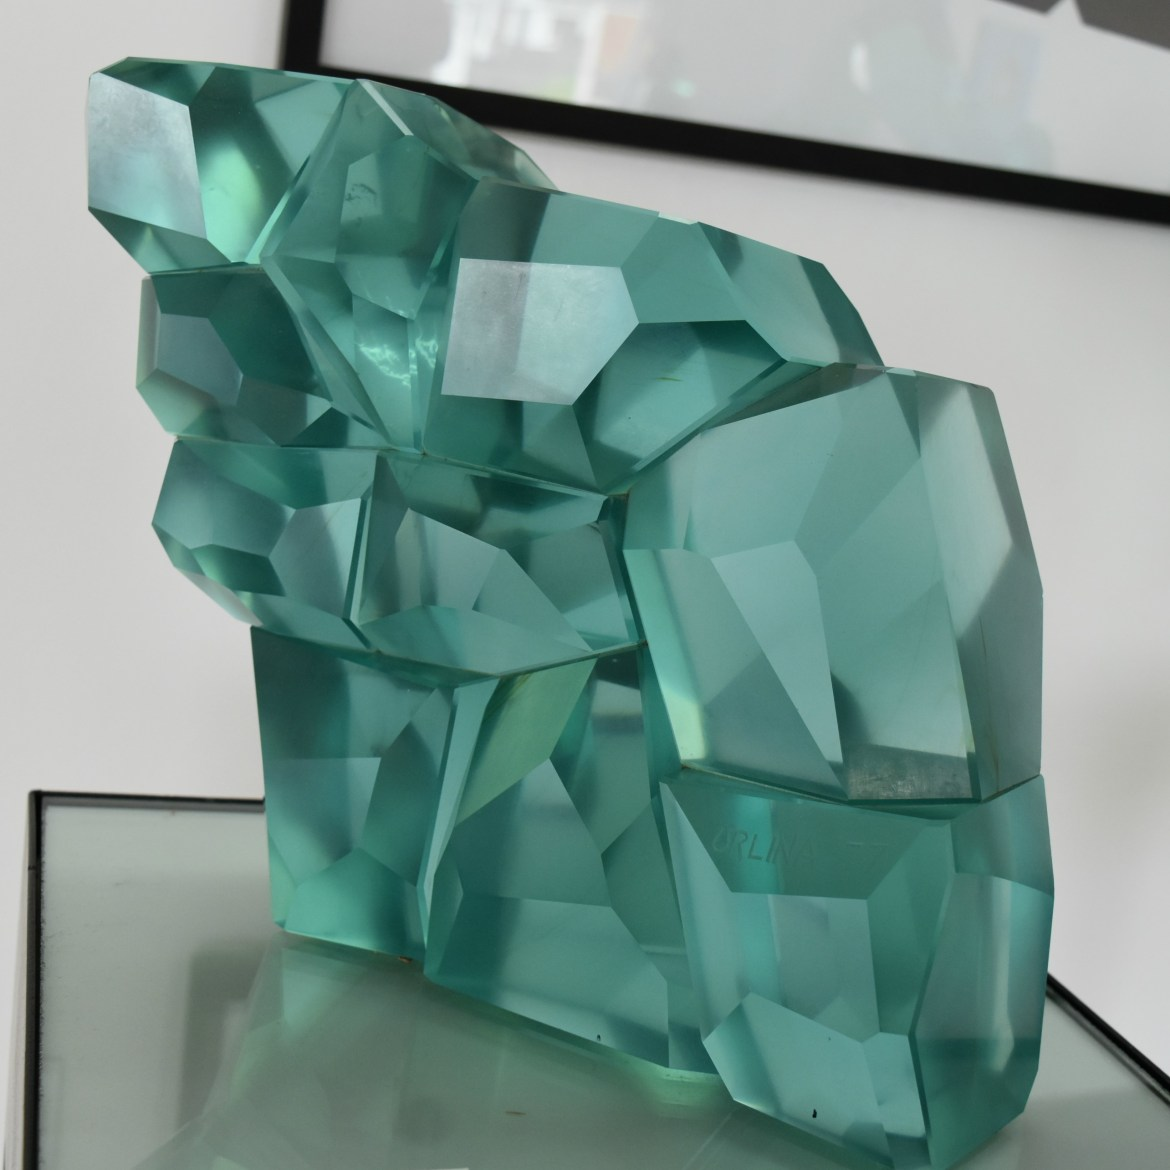 'Chasing Rainbows', glass sculpture by Ramon Orlina